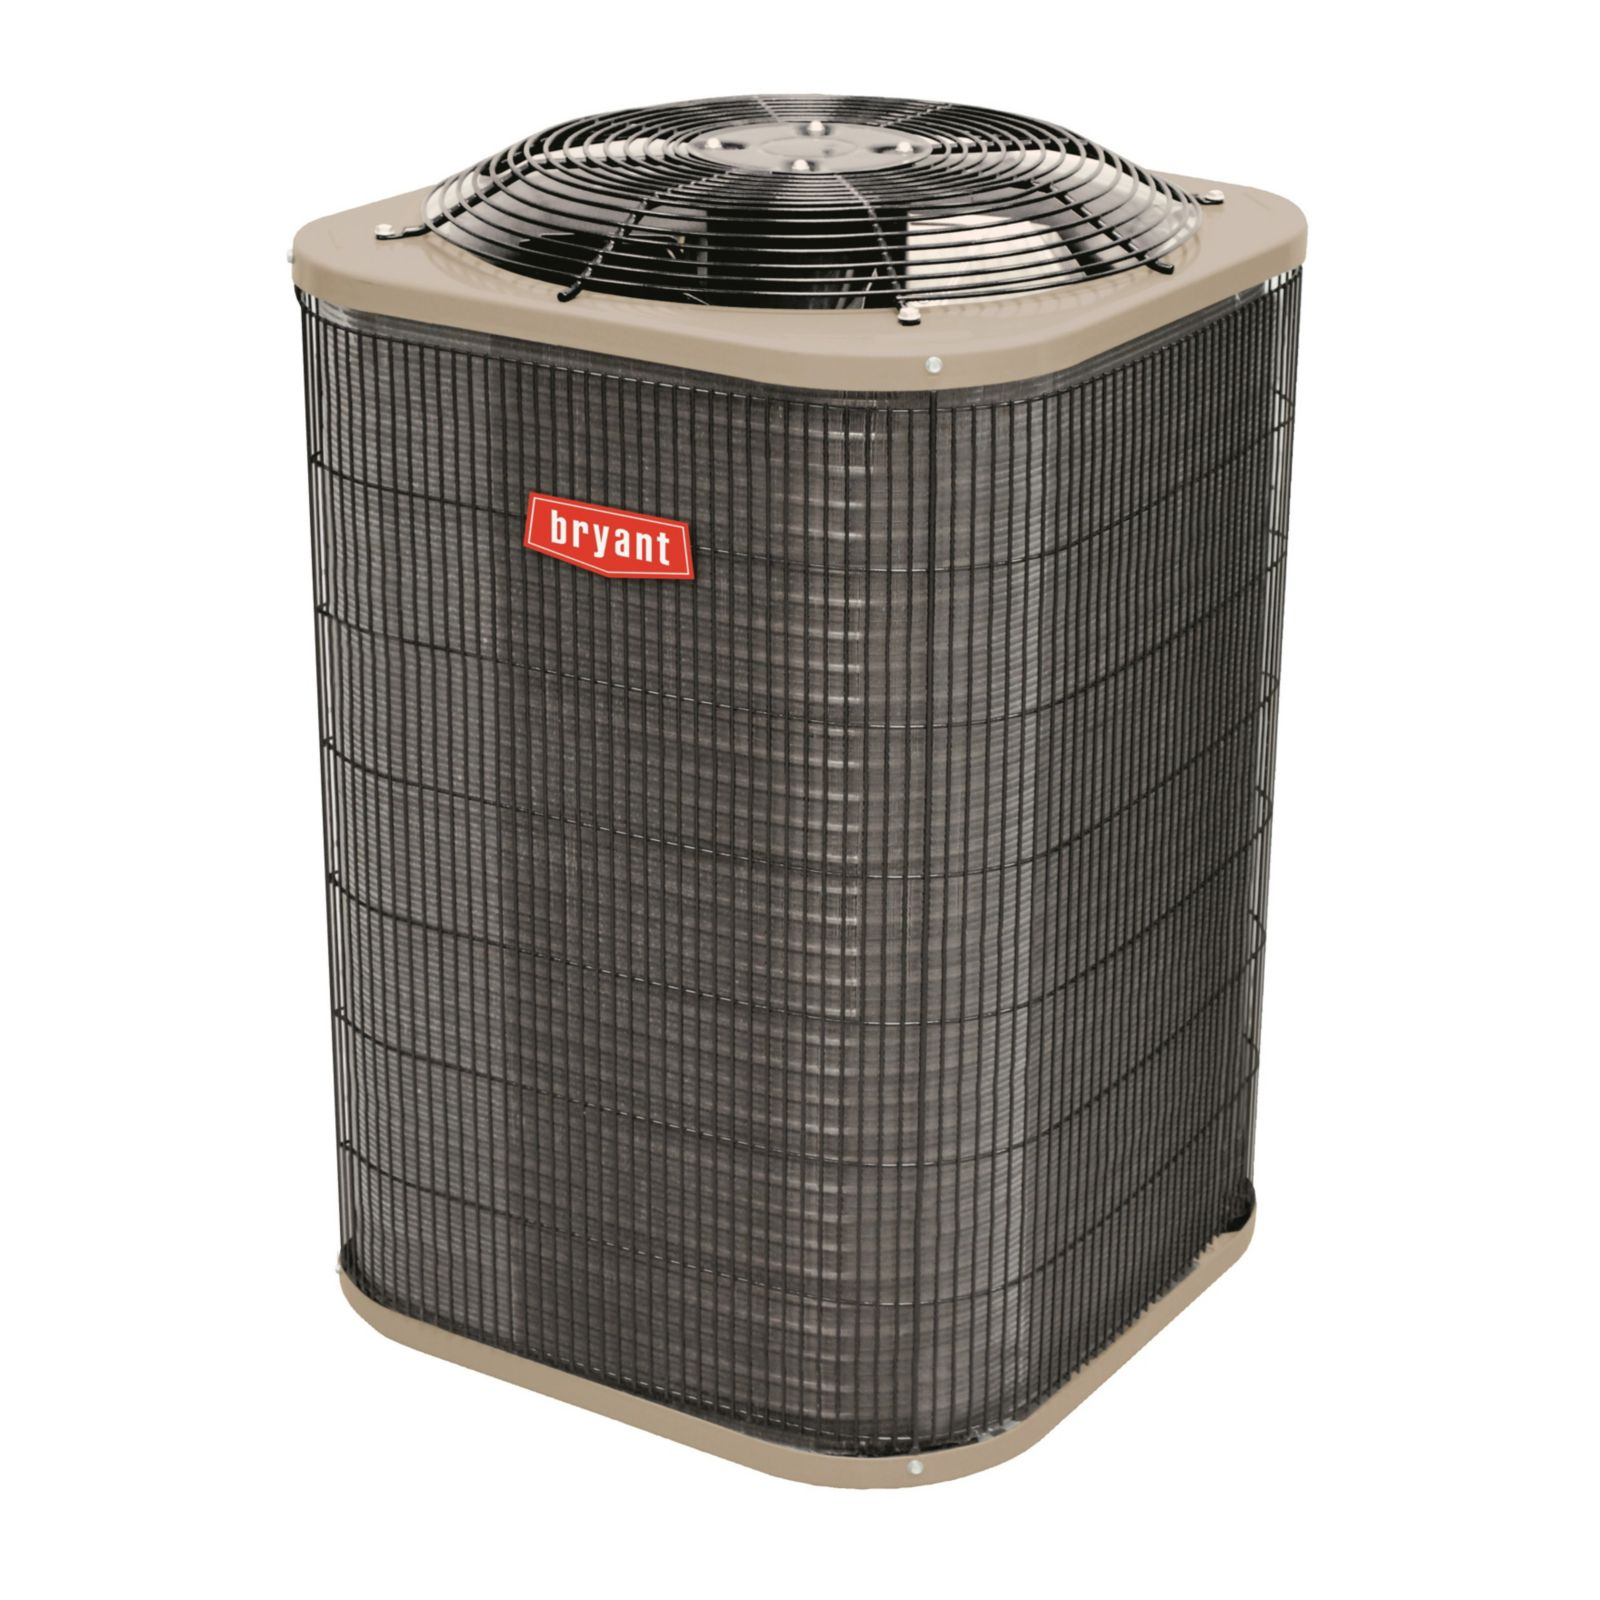 Bryant Sentry 3 Ton 14 Seer Residential Air Conditioner Condensing Unit Carrier Hvac